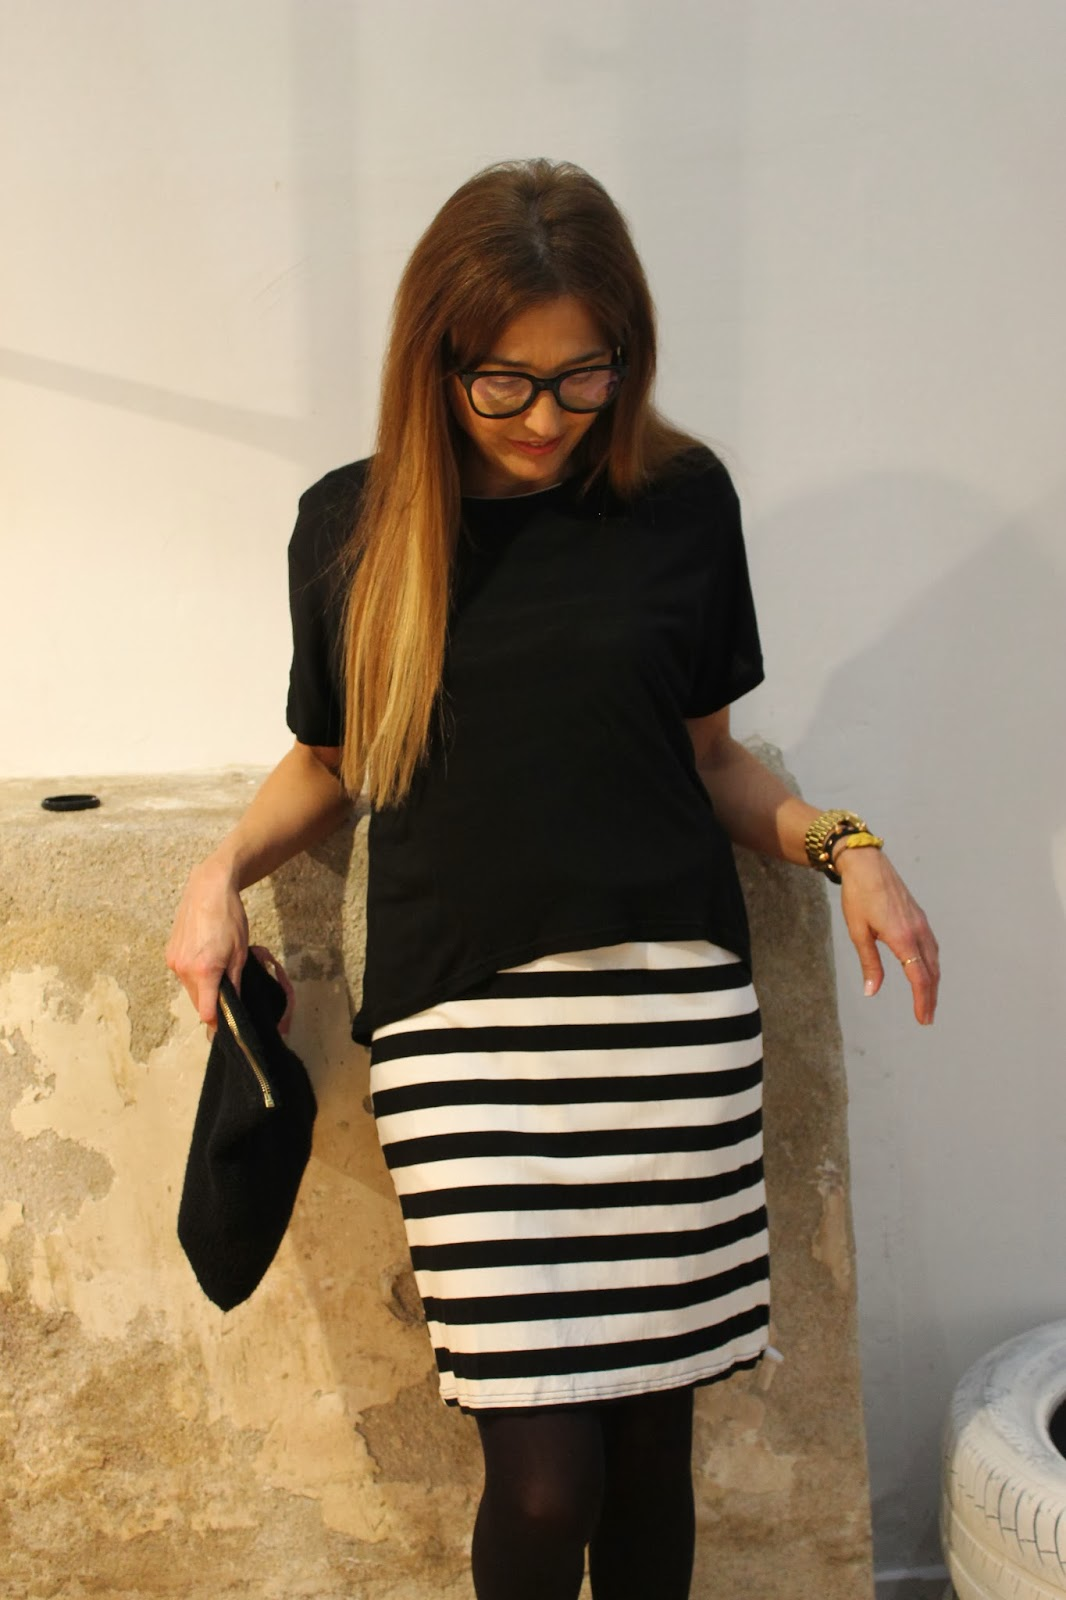 Enfant Terrible, The Dress Room, street style, moda, fashion blogger, fashion style, Carmen Hummer